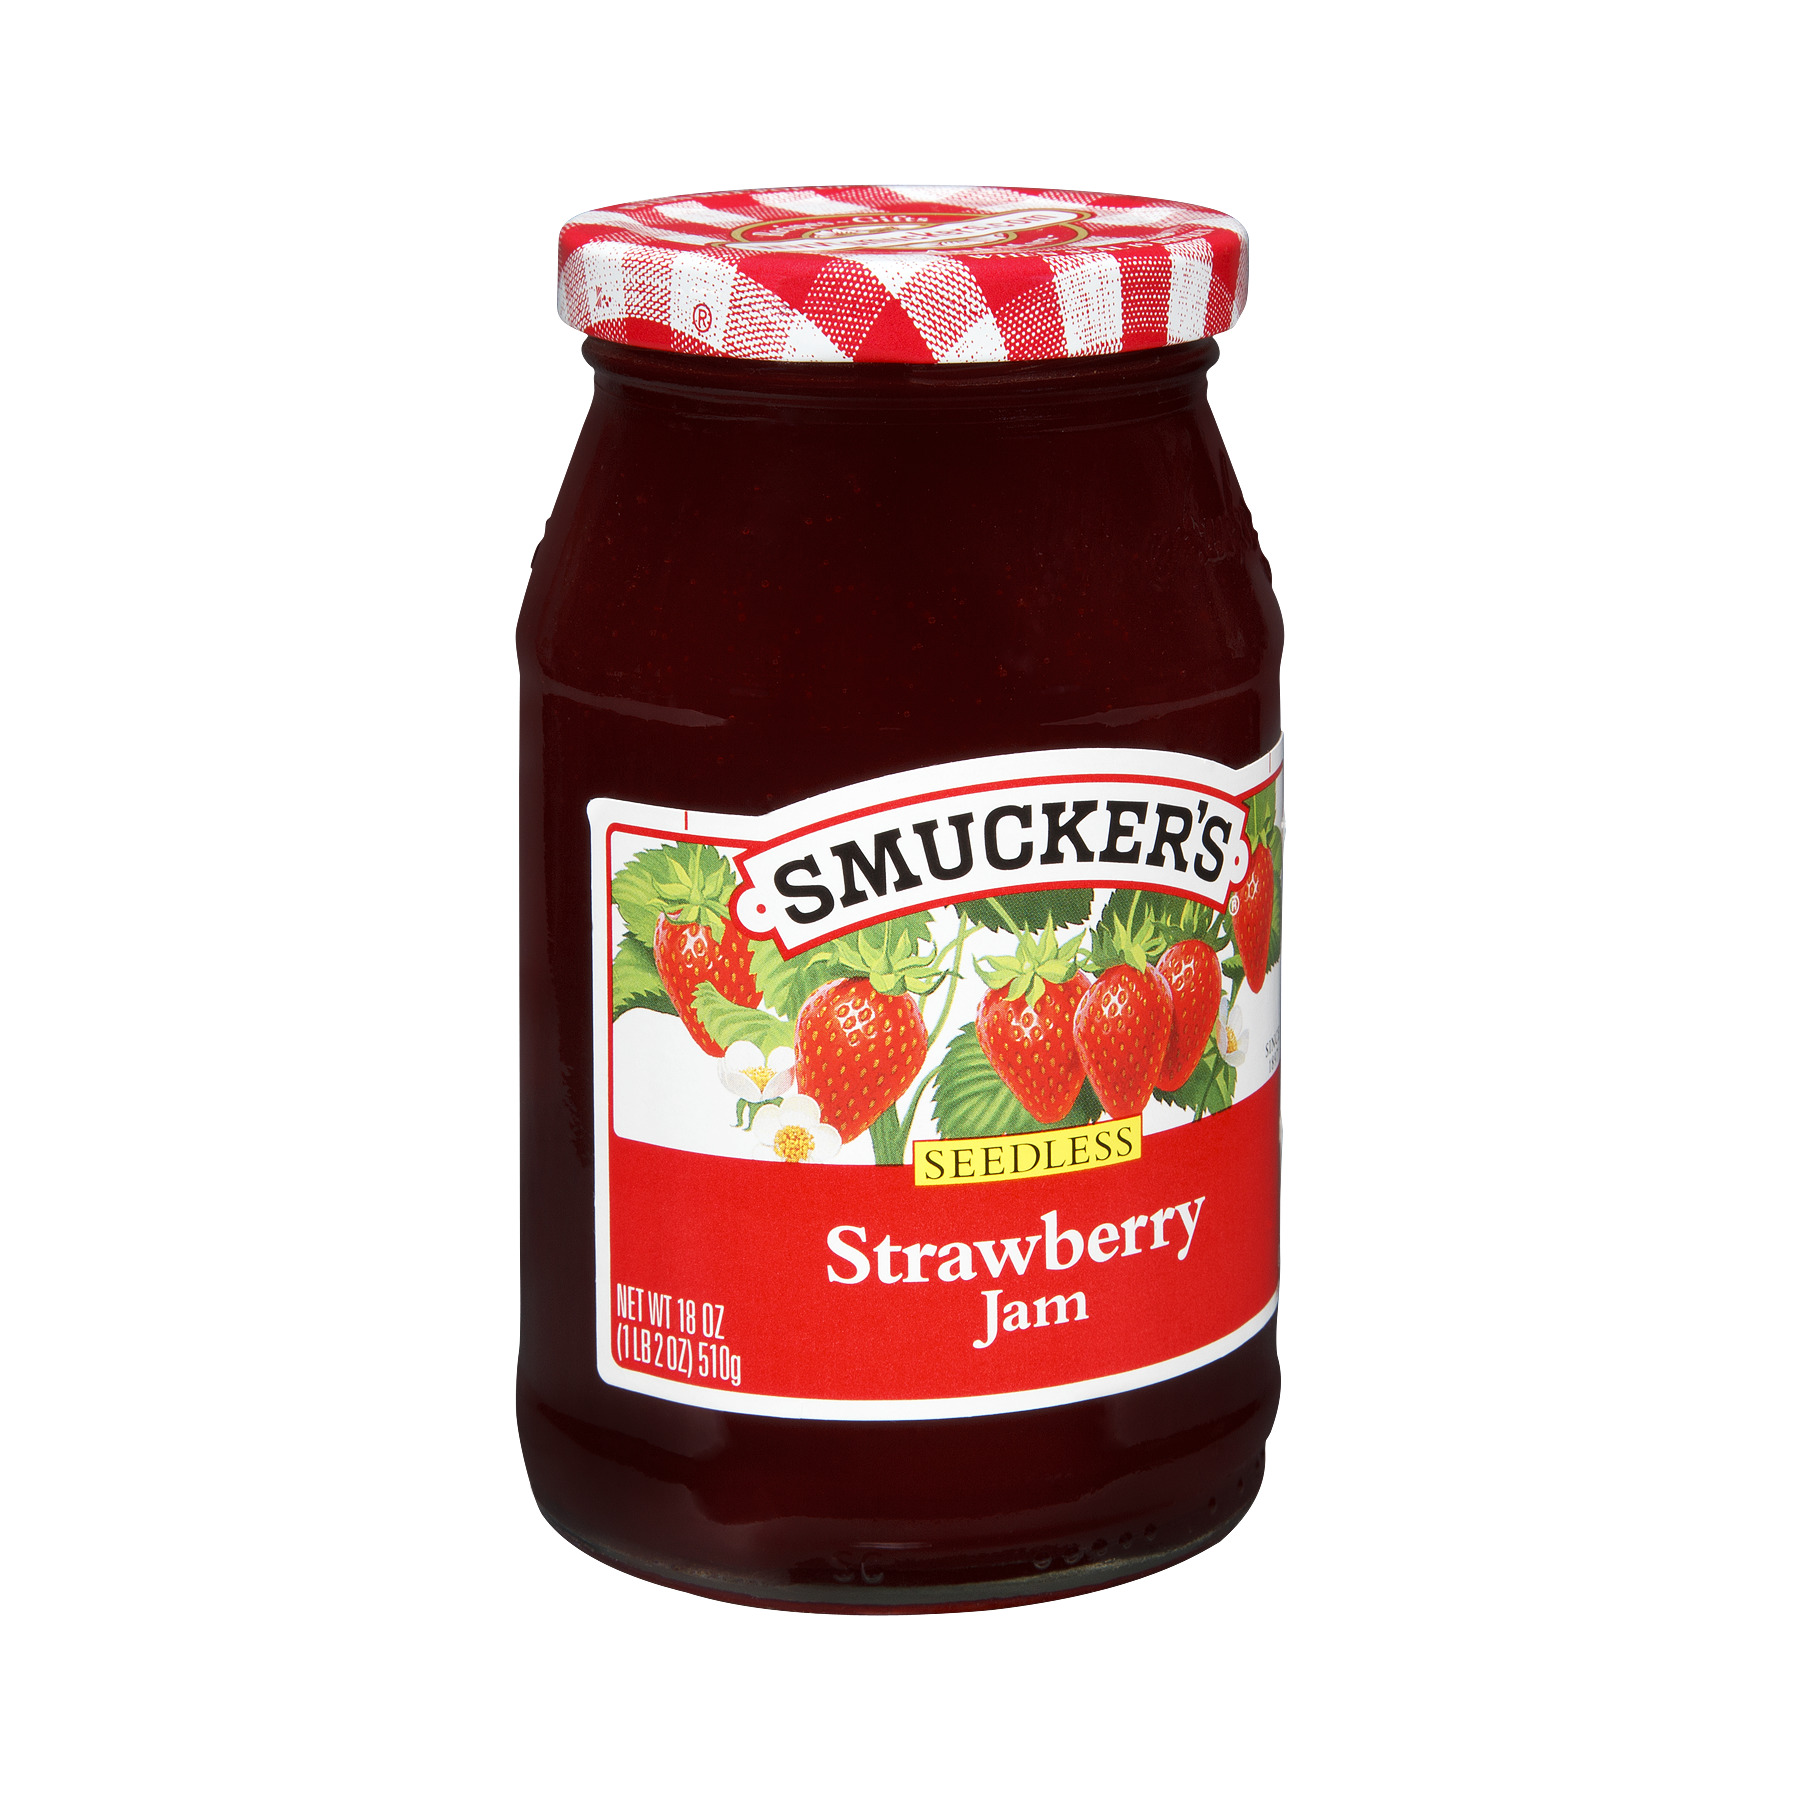 Smucker's Seedless Strawberry Jam, 18.0 OZ